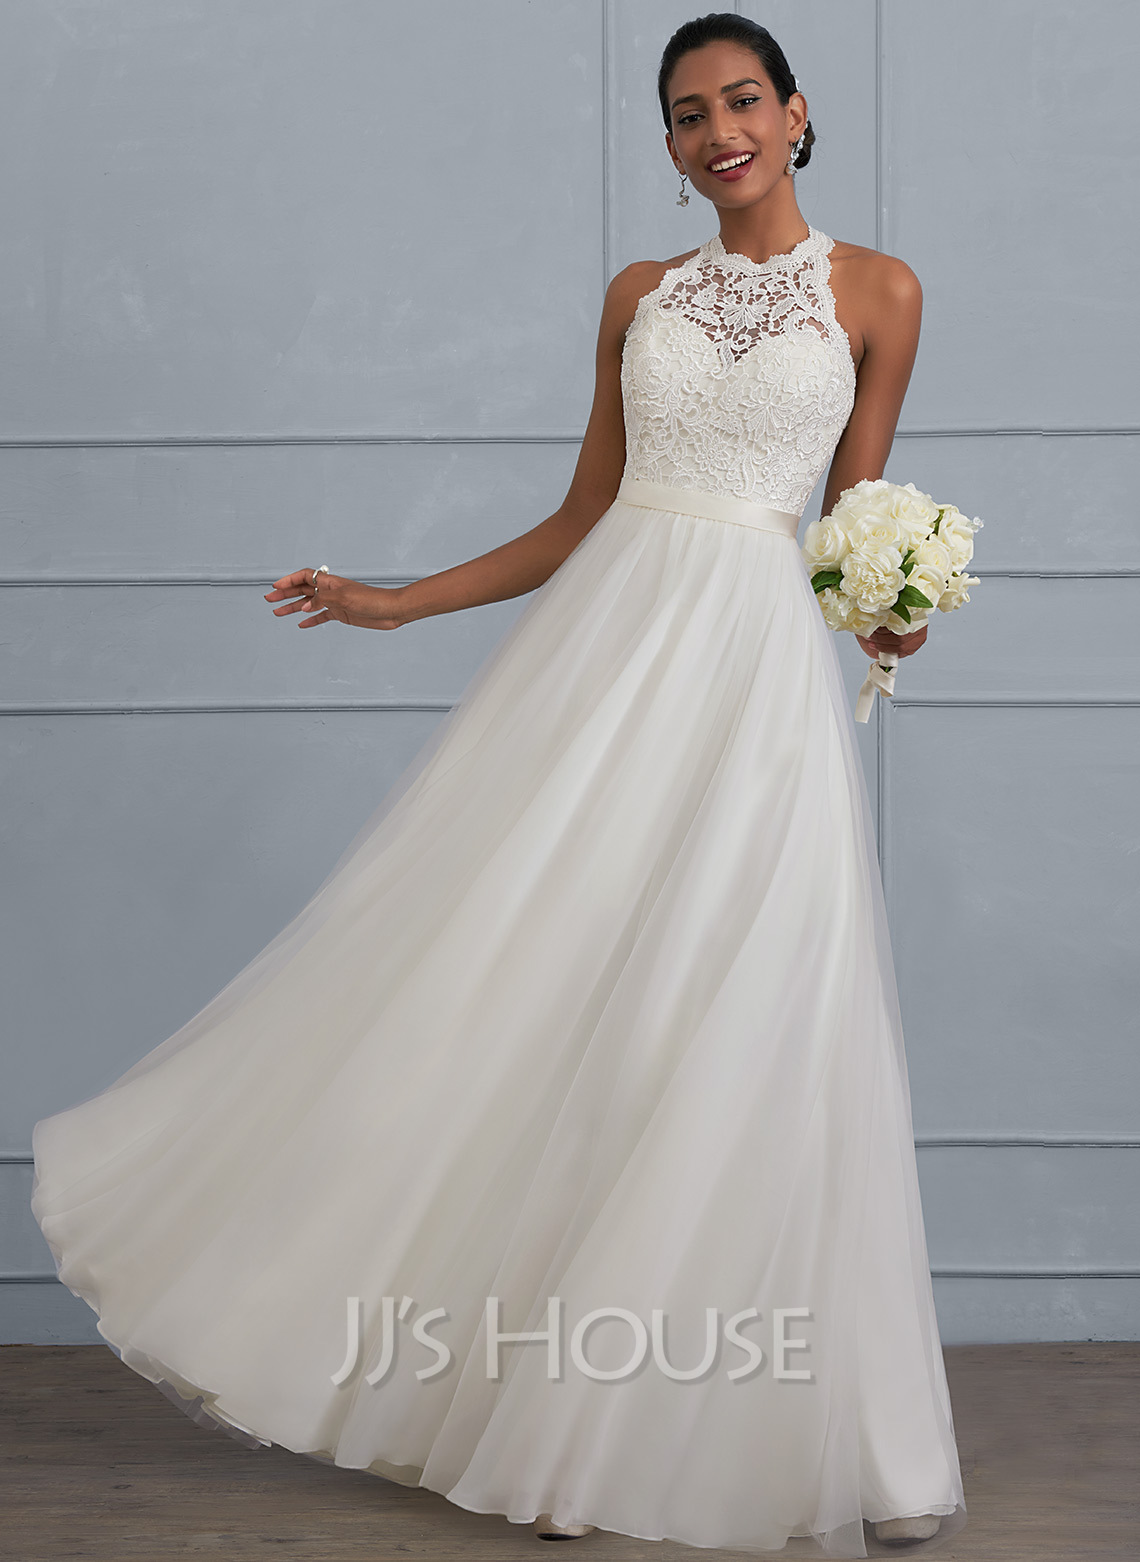 A lineprincess wedding dresses affordable under 100 jjshouse a lineprincess scoop neck floor length tulle wedding dress junglespirit